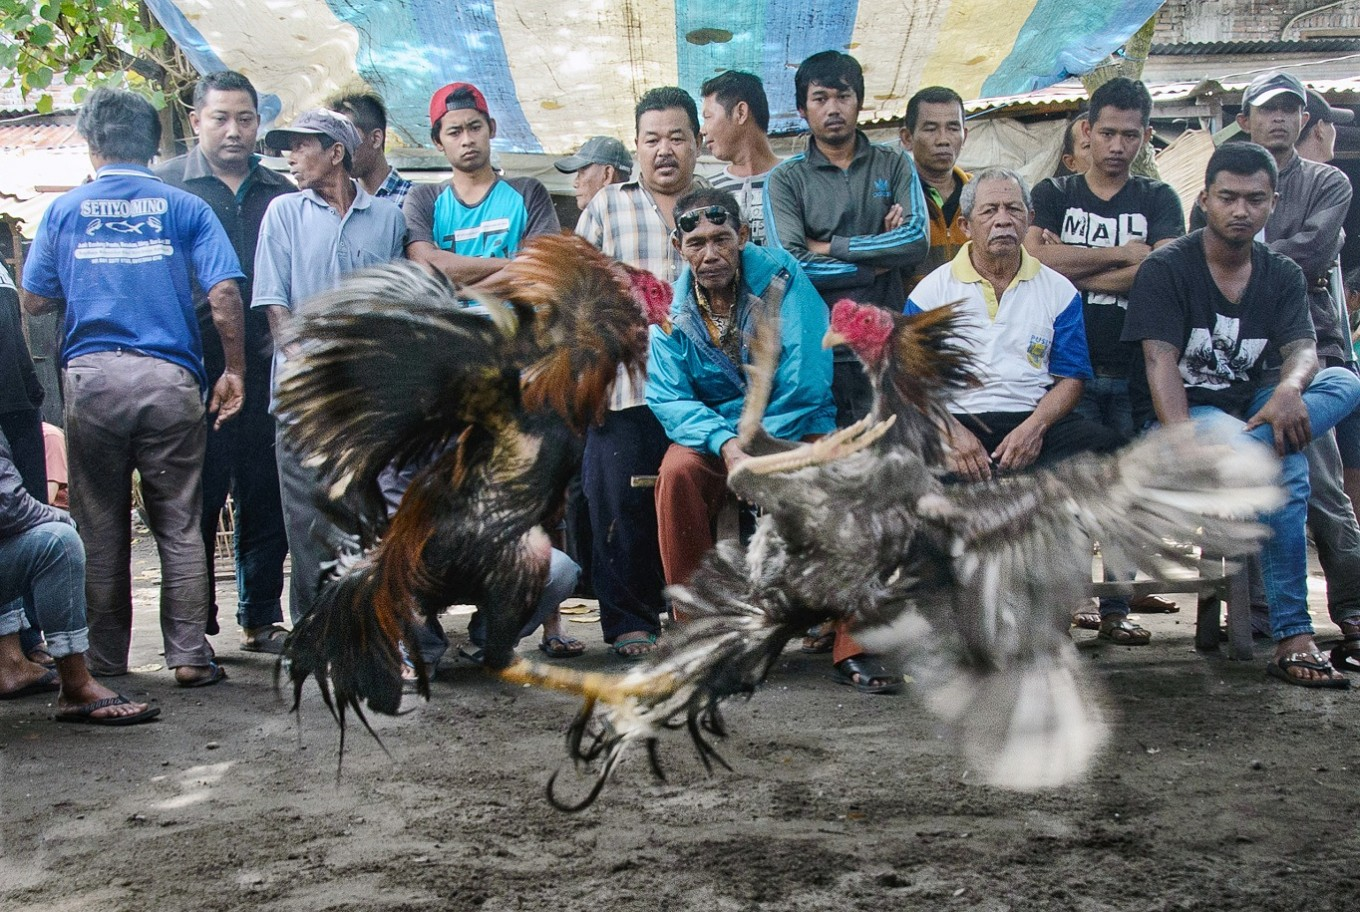 The duel: People gather around a cockfighting arena.